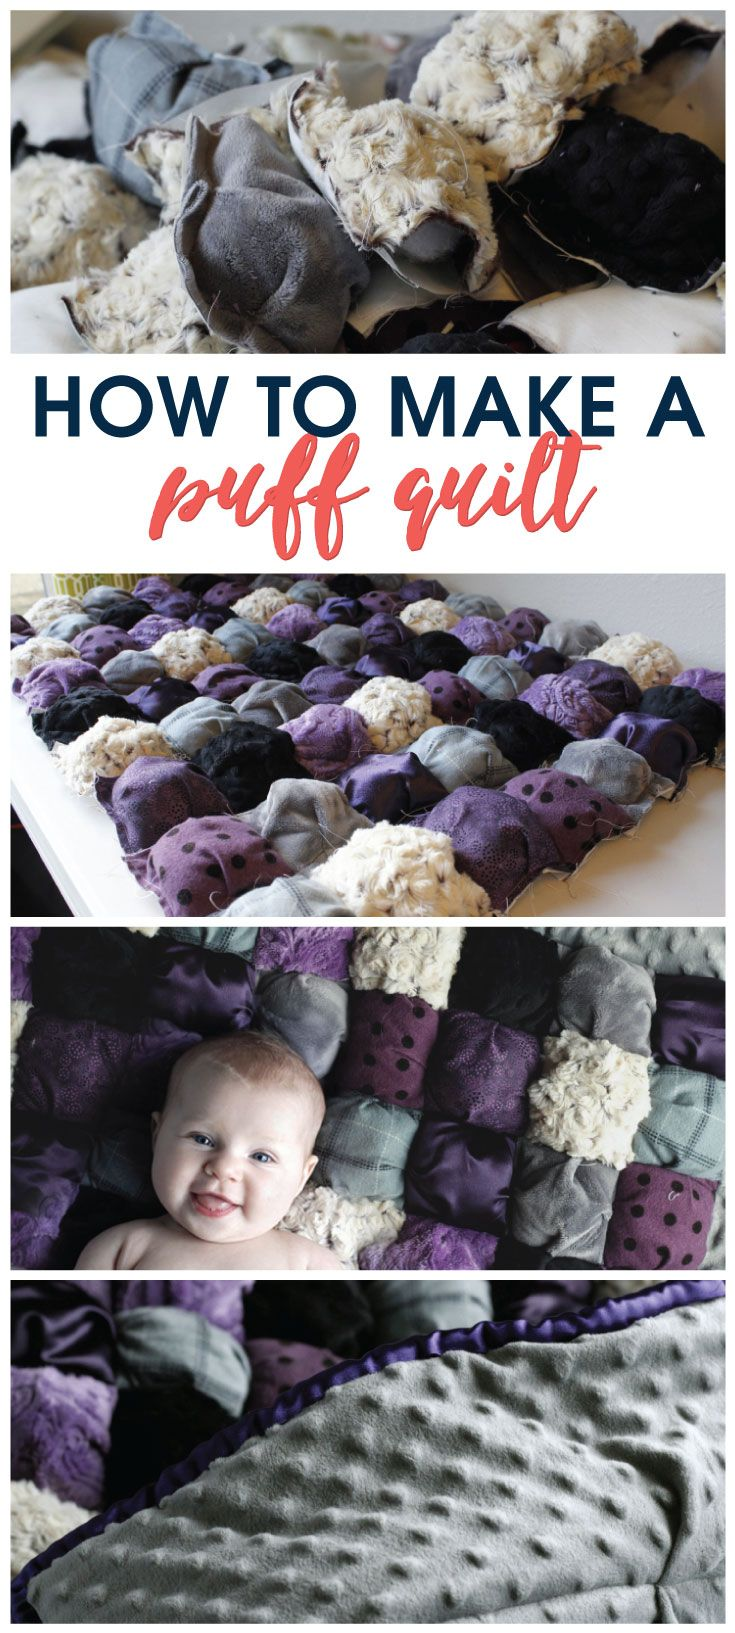 Make a puff quilt with this simple tutorial. Also known as a biscuit quilt, this easy quilt is perfect for even a beginner to make and so cute! Makes a great baby shower gift or birthday present for a new baby.